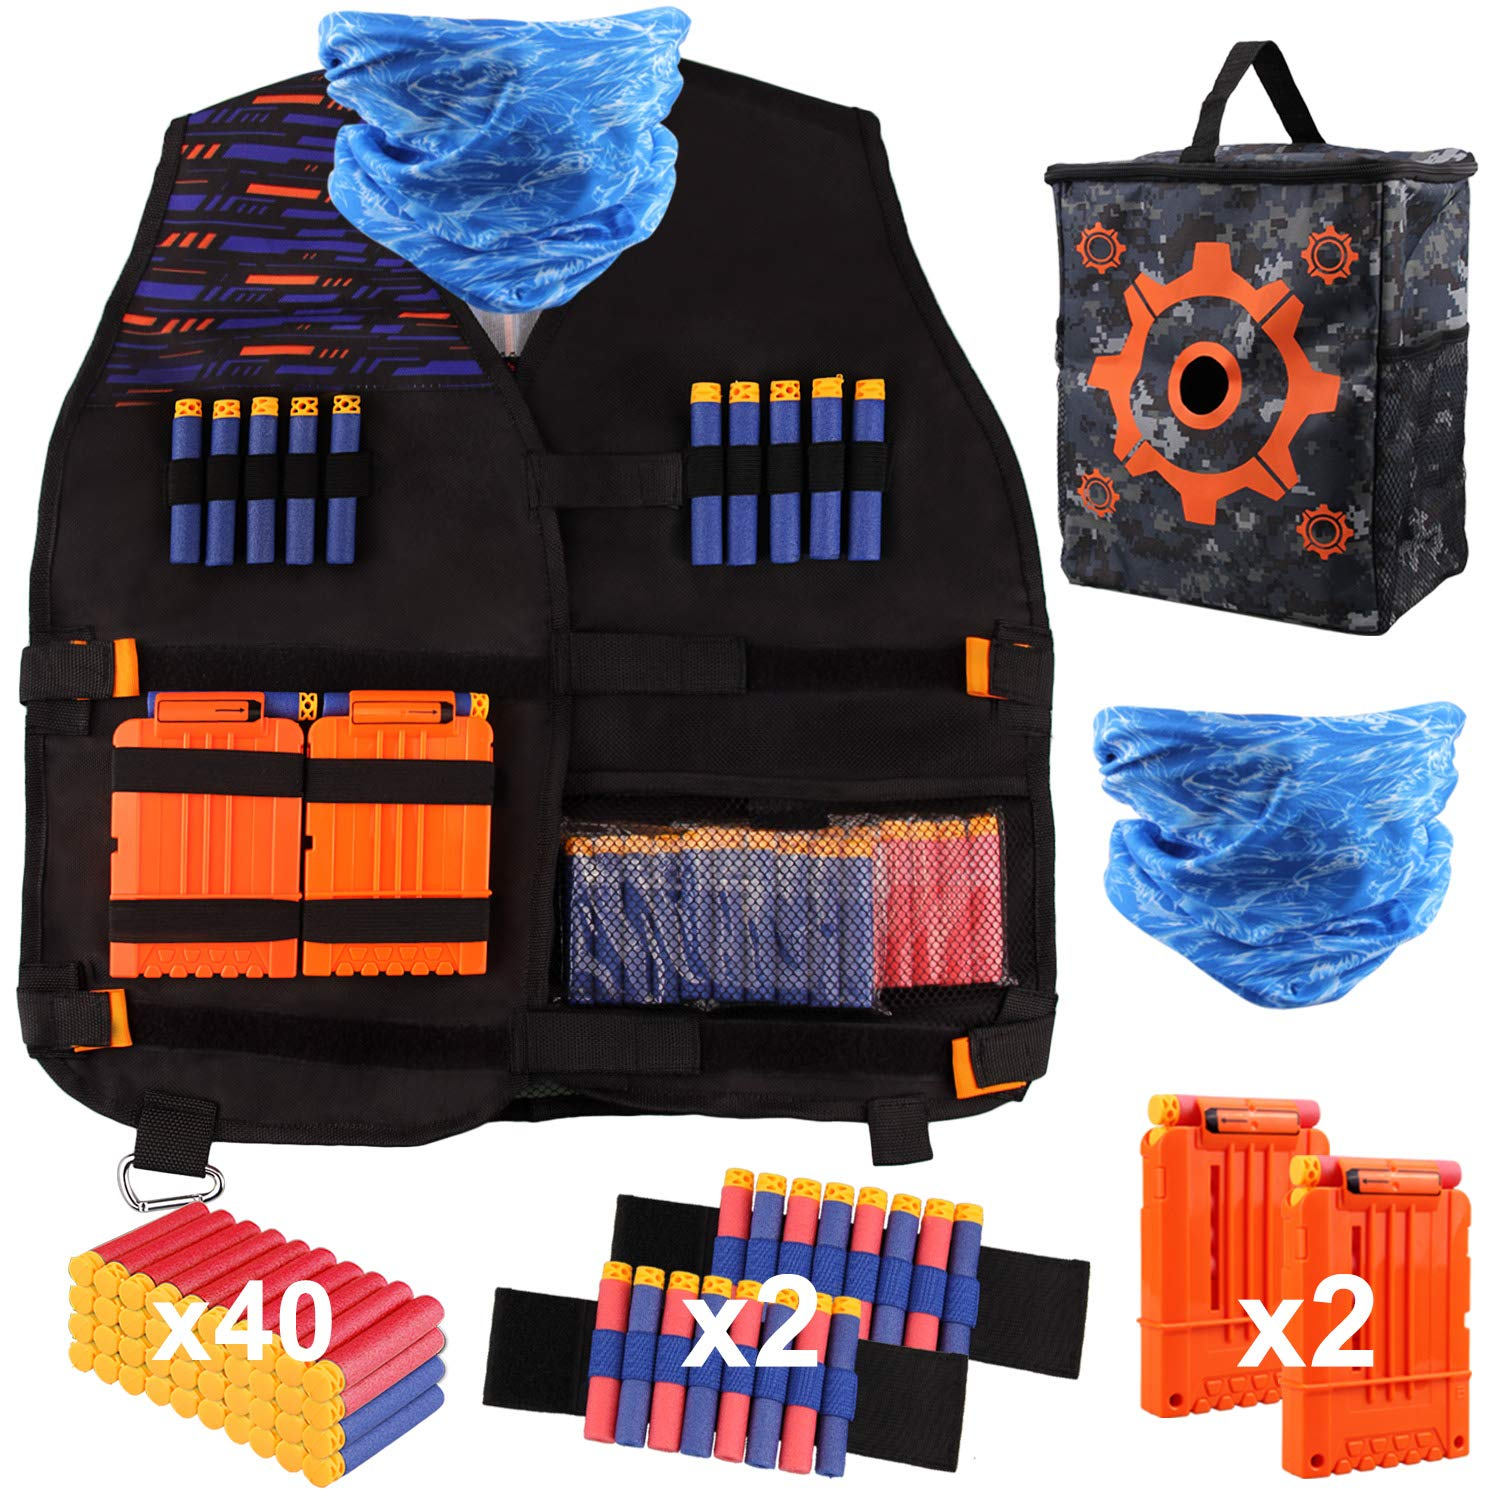 Satkago Tactical Vest Kit Vests Compatible with Nerf Guns N-Strike Elite Series, with 40Pcs Refill Darts, Target Pouch Storage Bag, Tactical Mask, 2 Wristbands and 2 Quick Reload Clips by Satkago